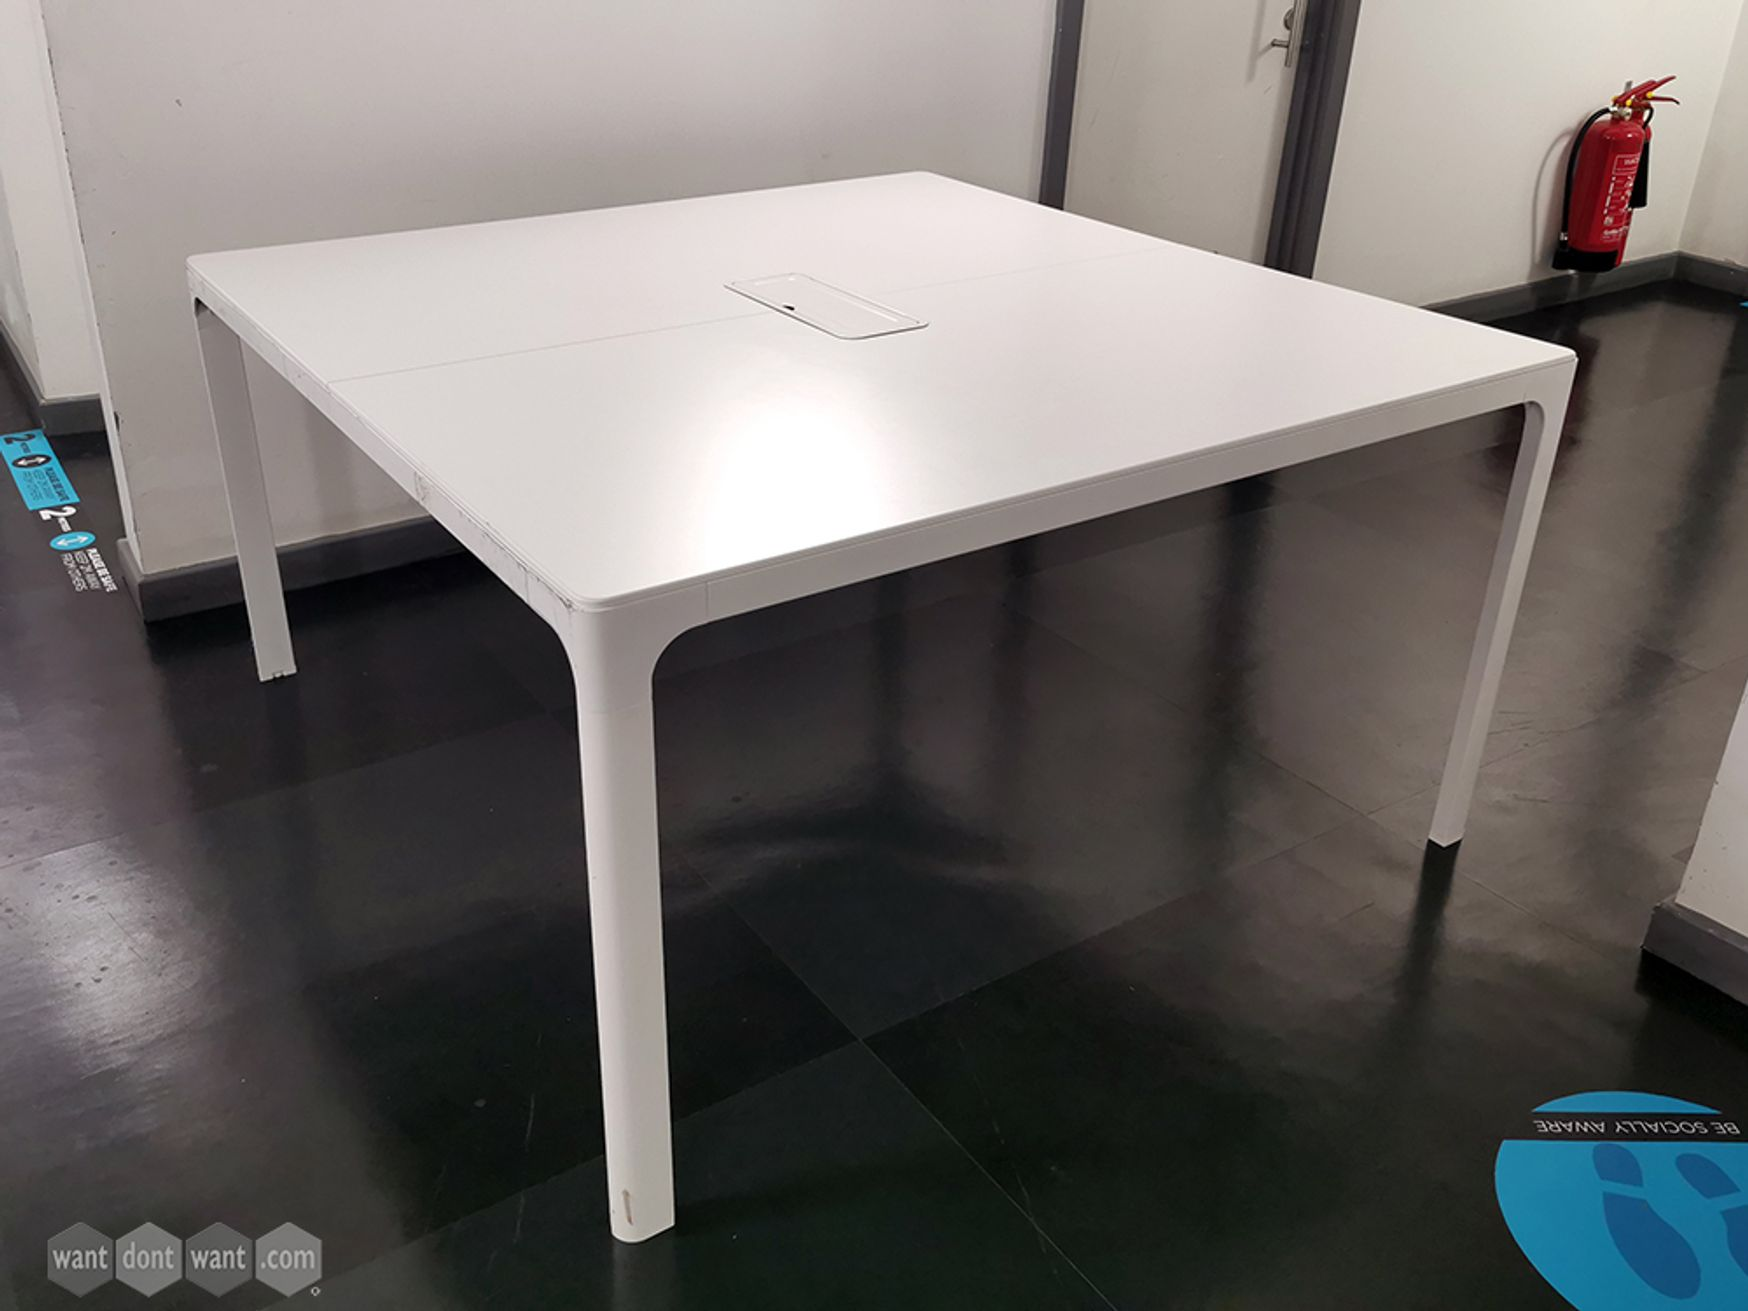 Used White 1400mm Square Meeting Table with Cable Access Flap